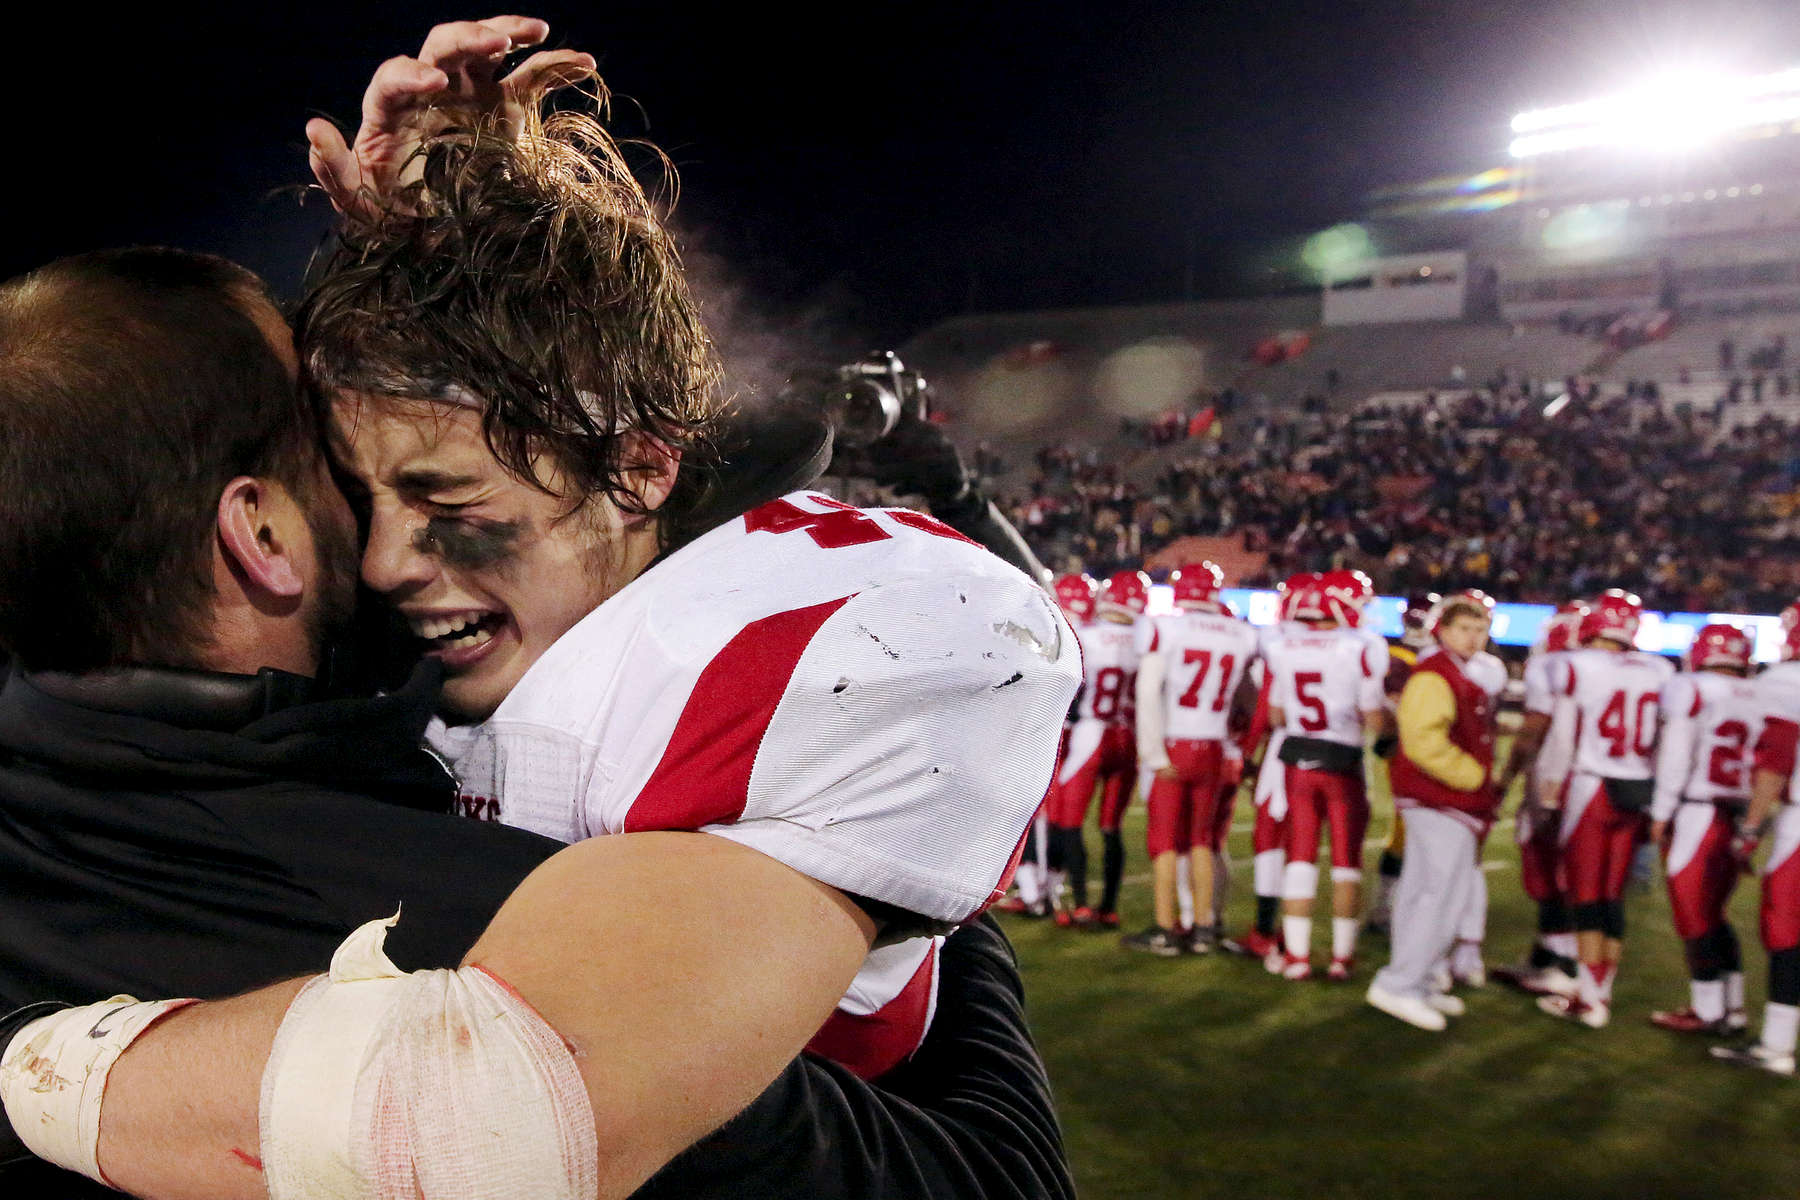 Naperville's Jack Wooldridge gets a hug from his coach after winning an IHSA Class 8A football championship game between the Loyola Academy Ramblers and the Naperville Central Redhawks at Huskie Stadium on the grounds of Northern Illinois University in DeKalb, Ill.